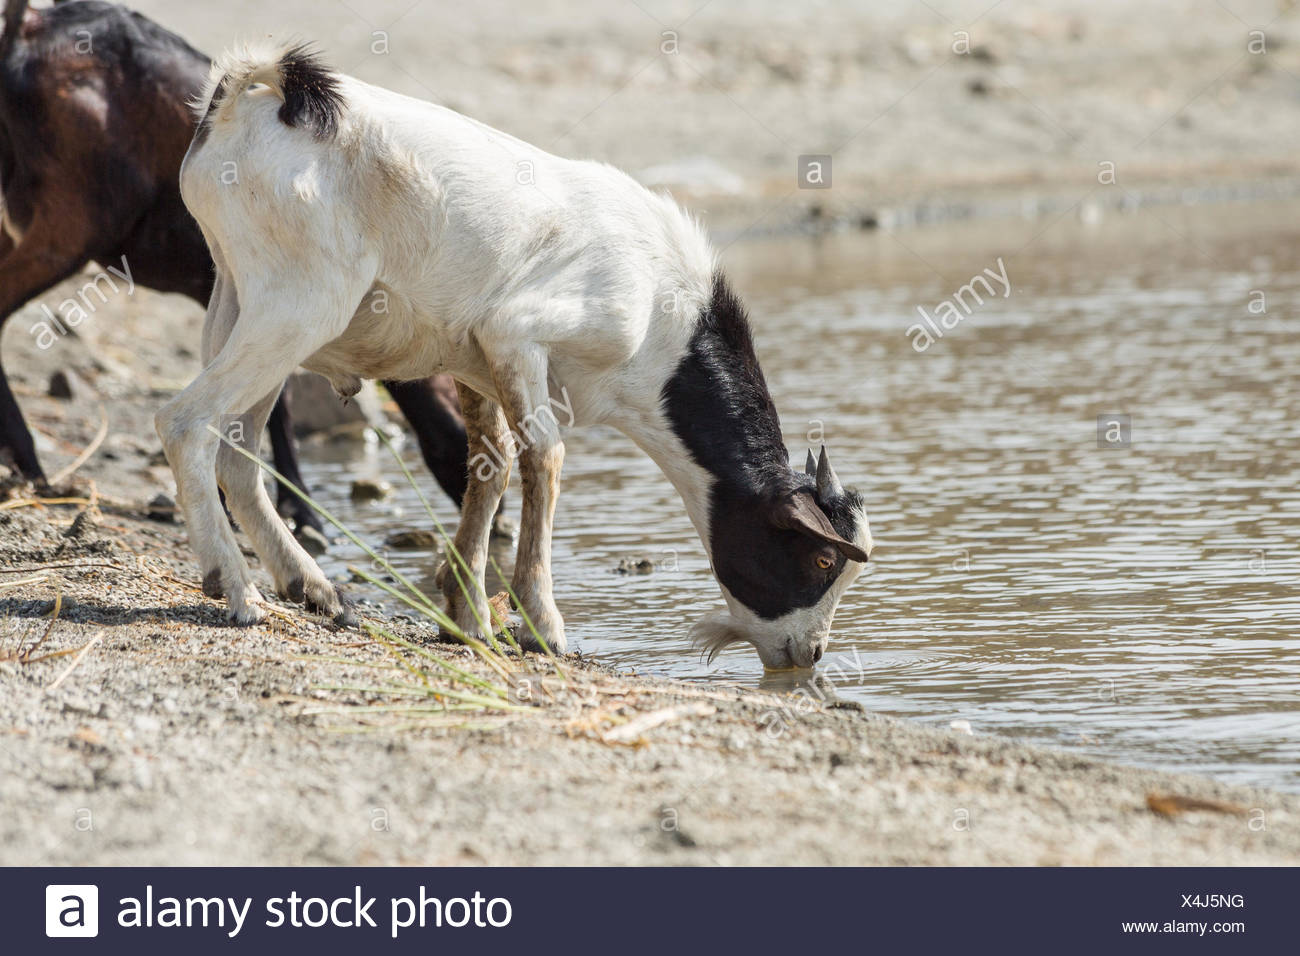 goats drinking water stock photos goats drinking water stock